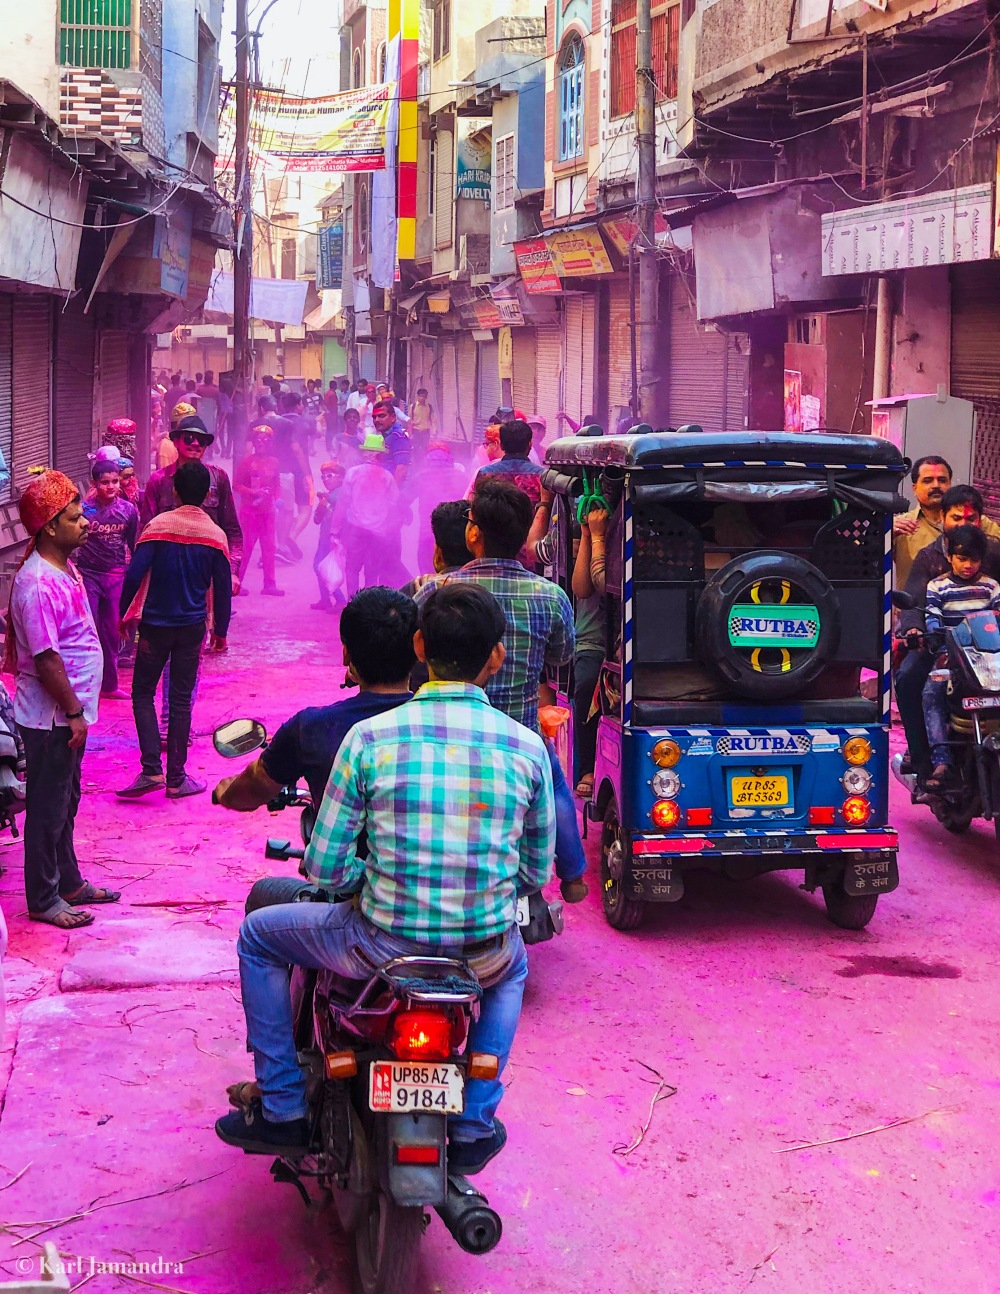 THE STREETS OF MATHURA.